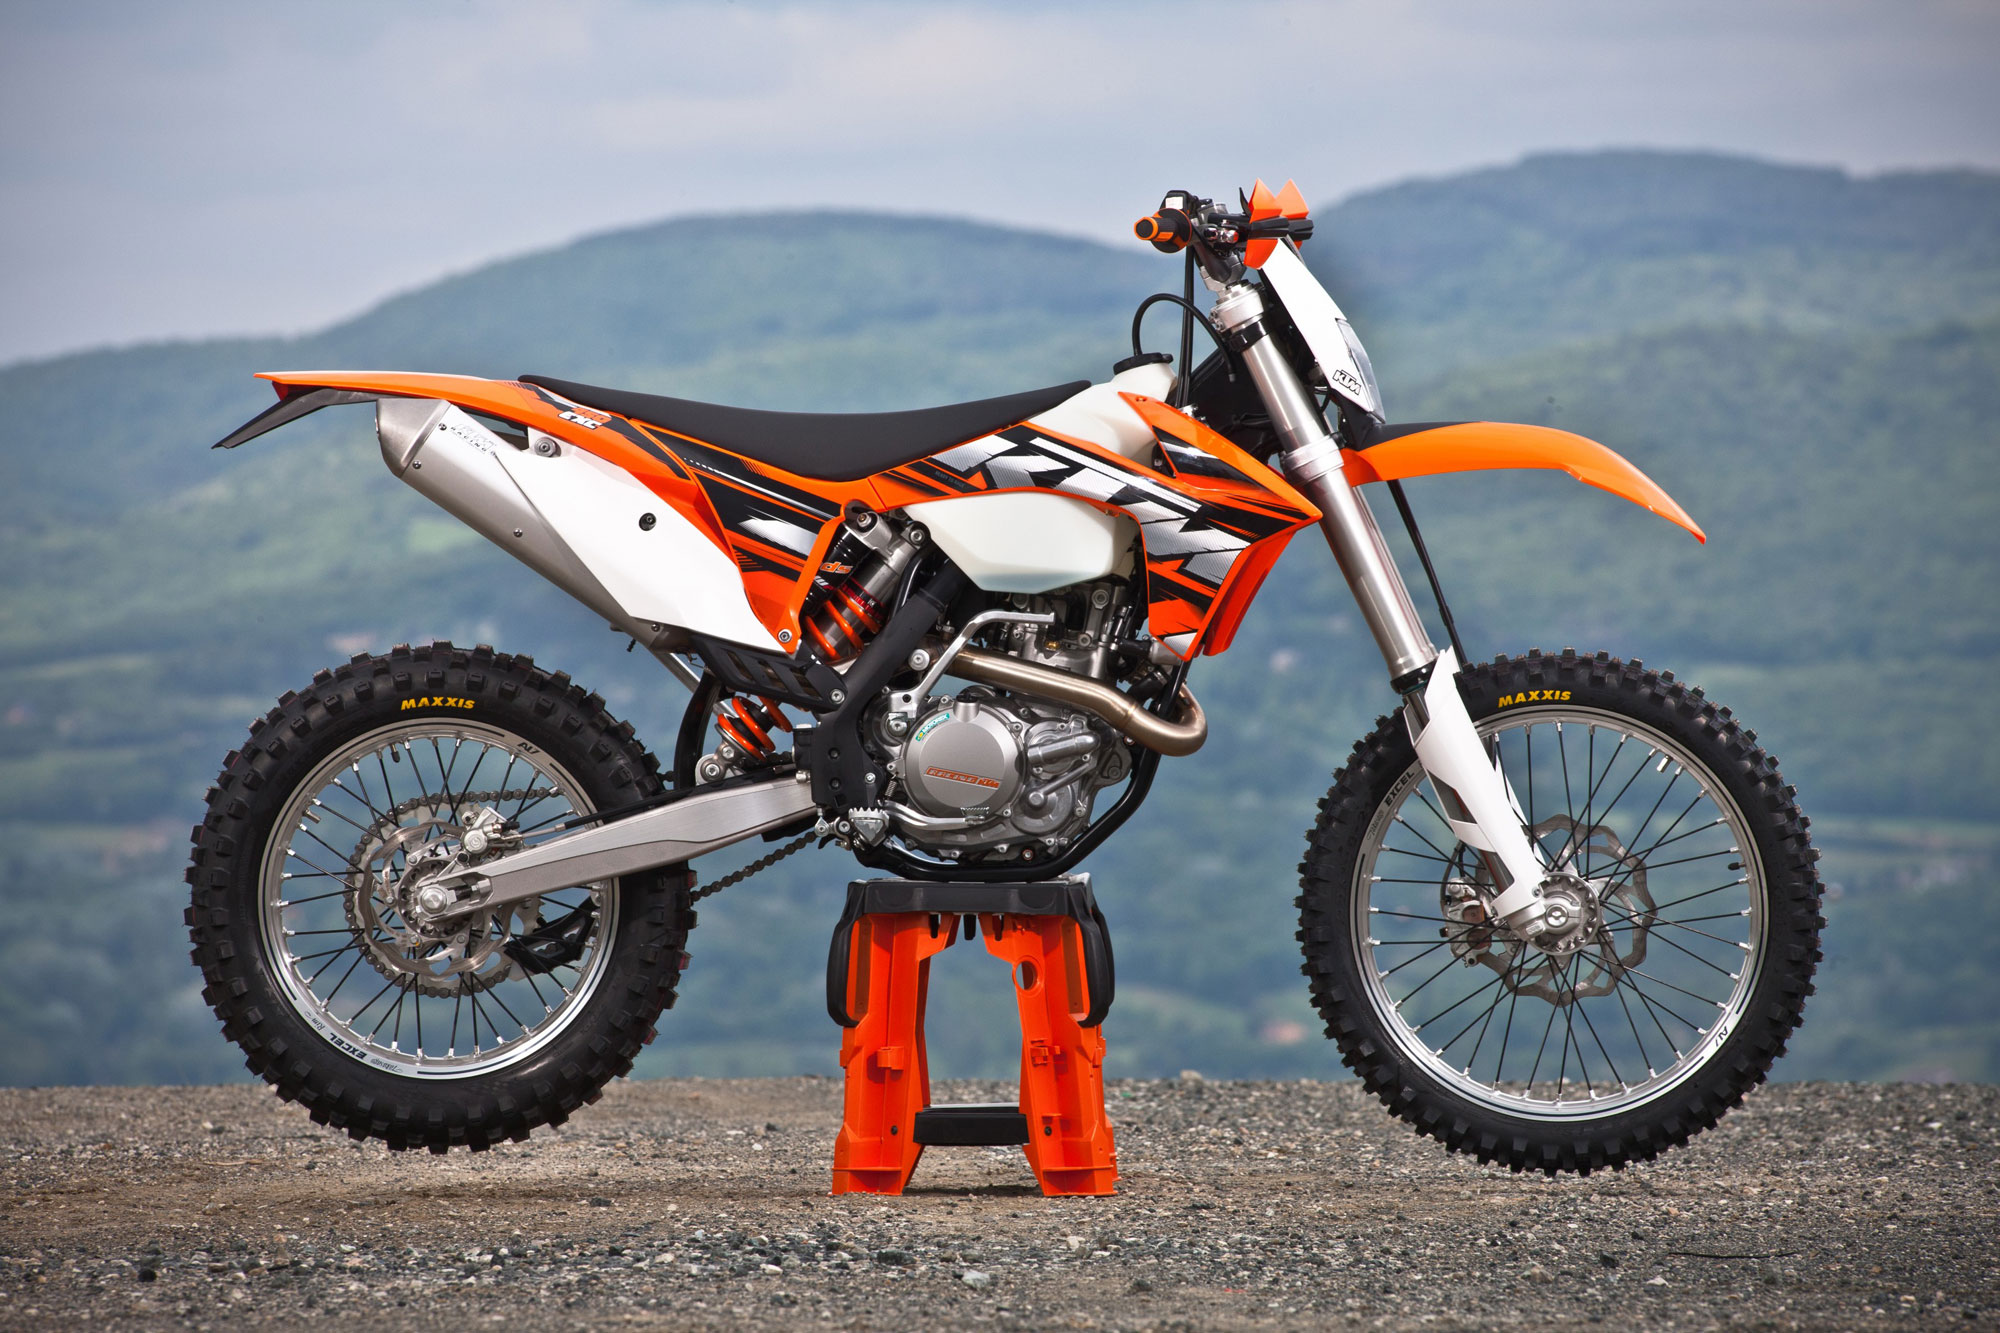 2010 ktm 450 exc sixdays pics specs and information. Black Bedroom Furniture Sets. Home Design Ideas